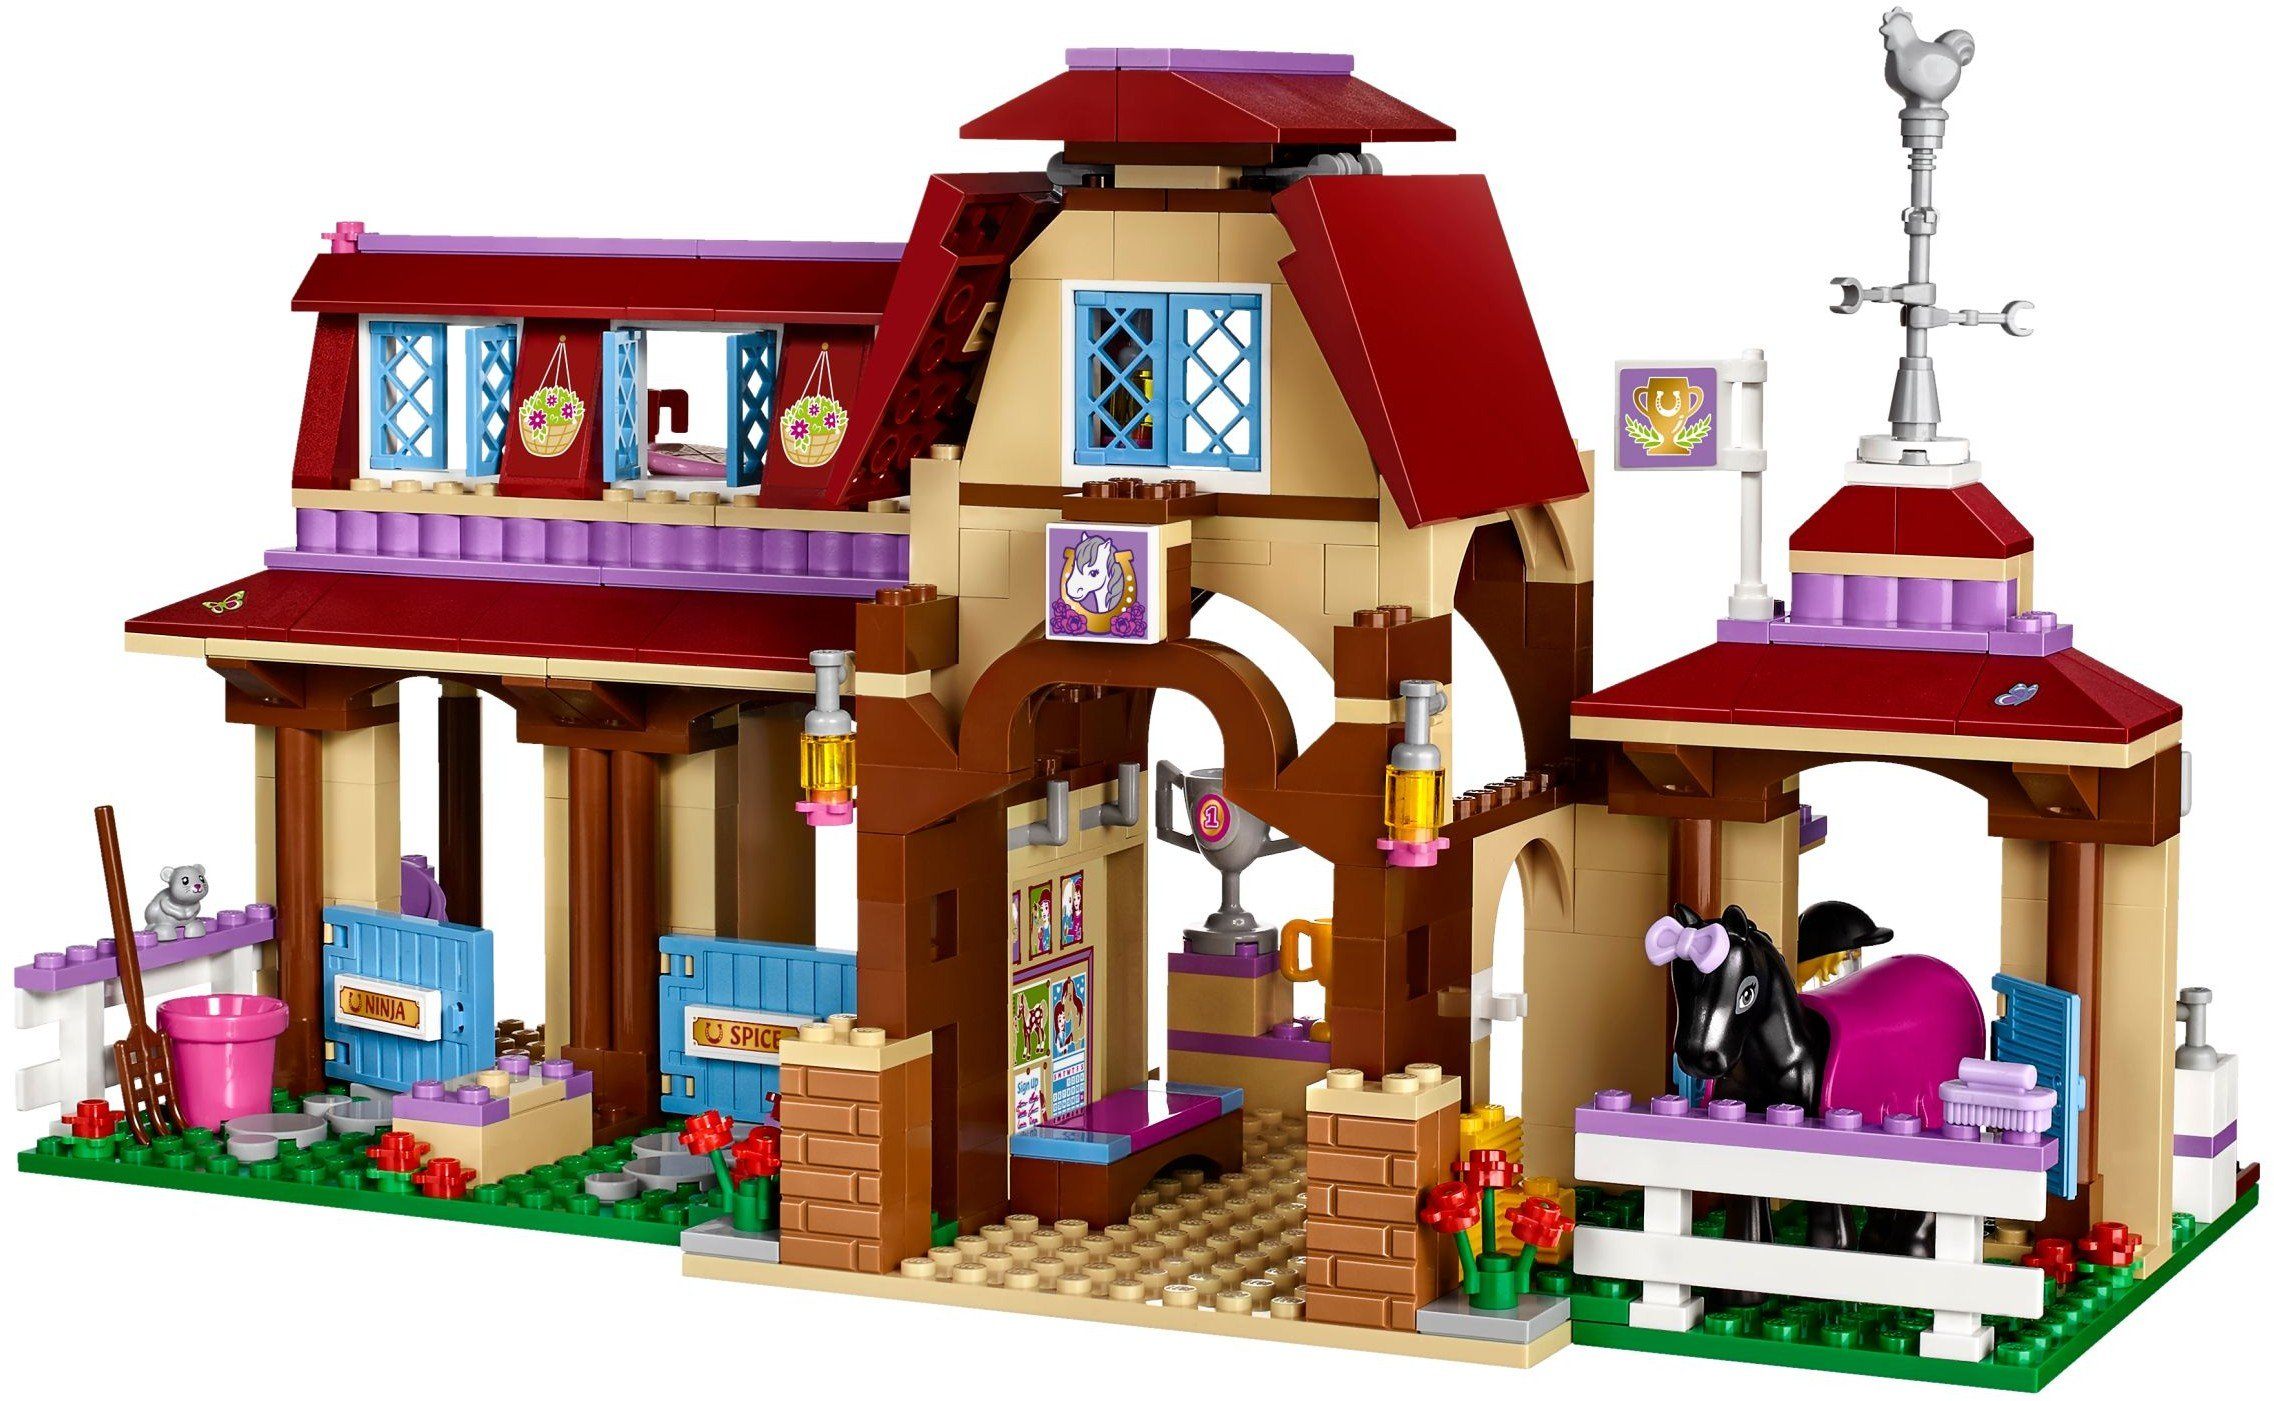 5 Top LEGO Friends Horse Sets For Girls That are Awesome